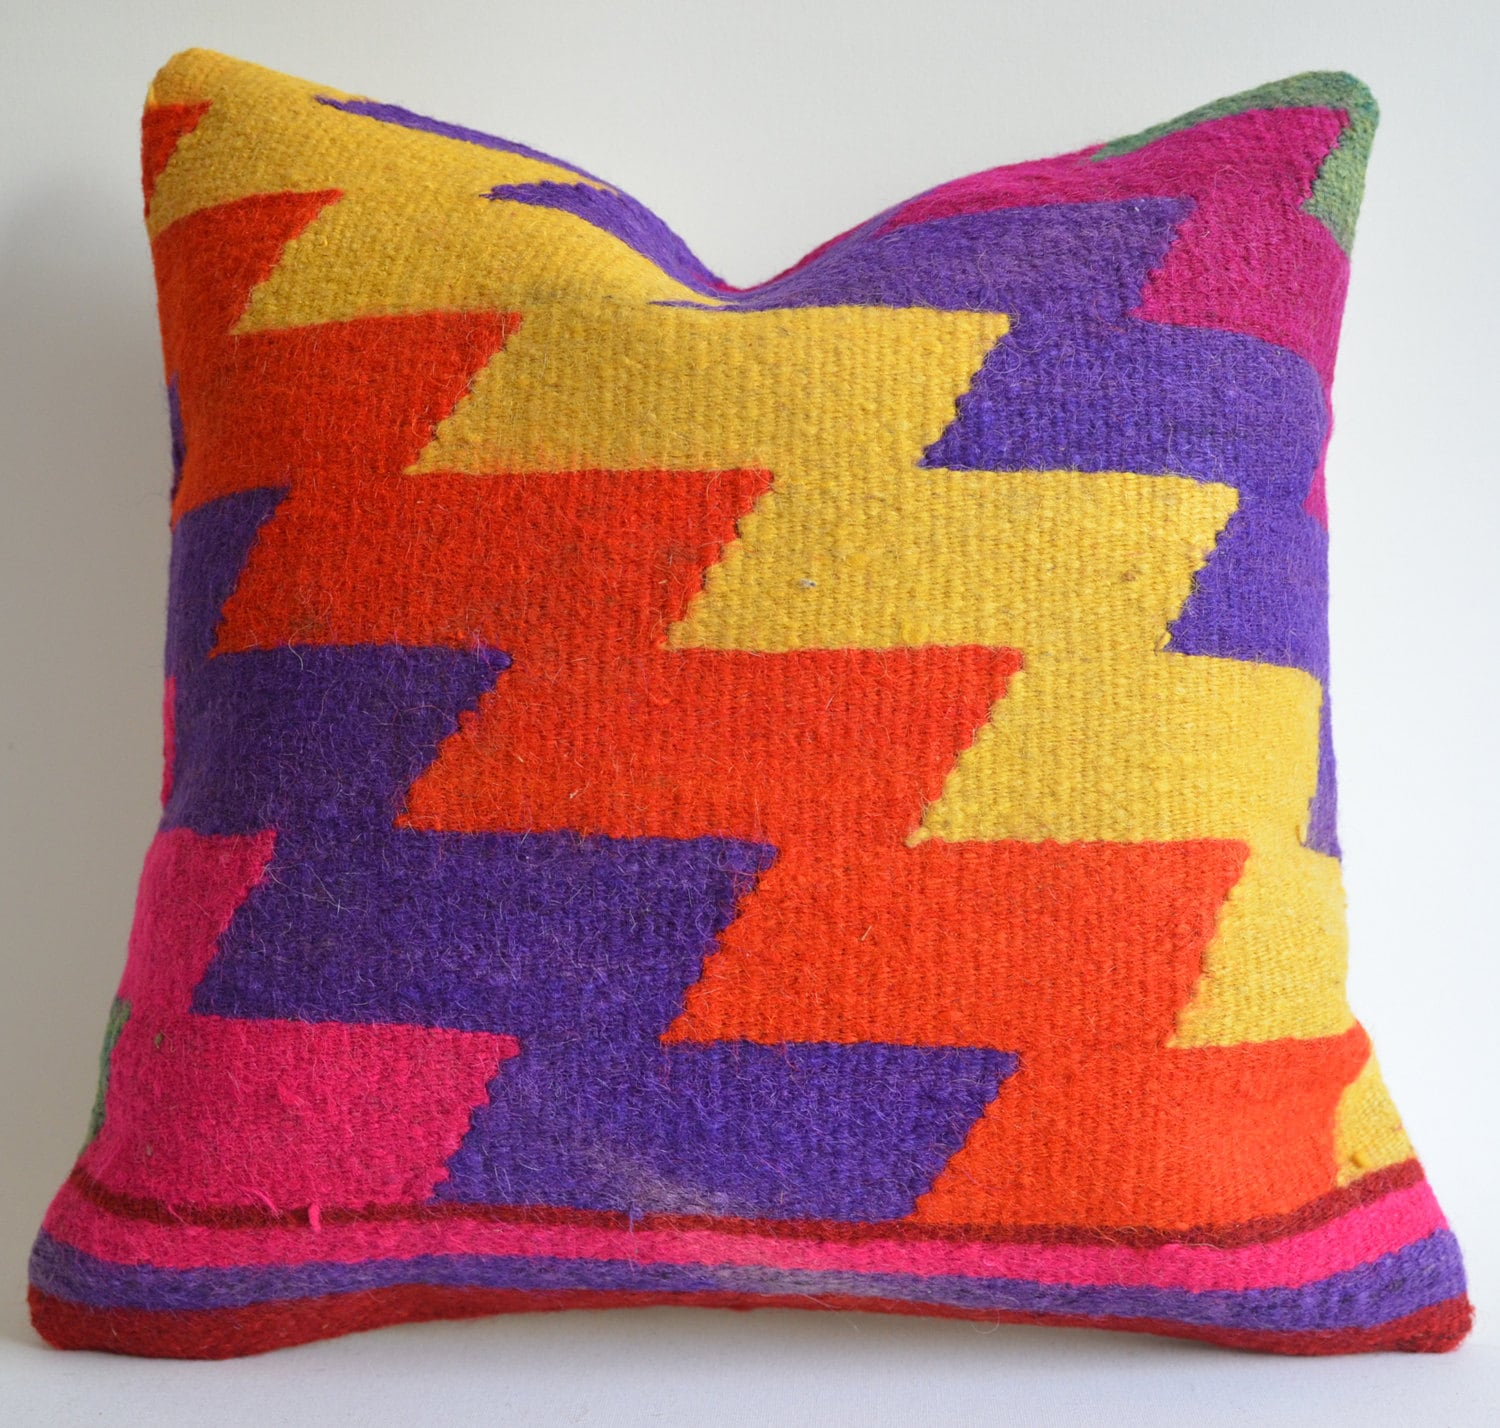 Modern Pillows Etsy : Sukan / Modern Bohemian Throw Pillow. Handwoven Wool Vintage Tribal Turkish Kilim Pillow Cover ...